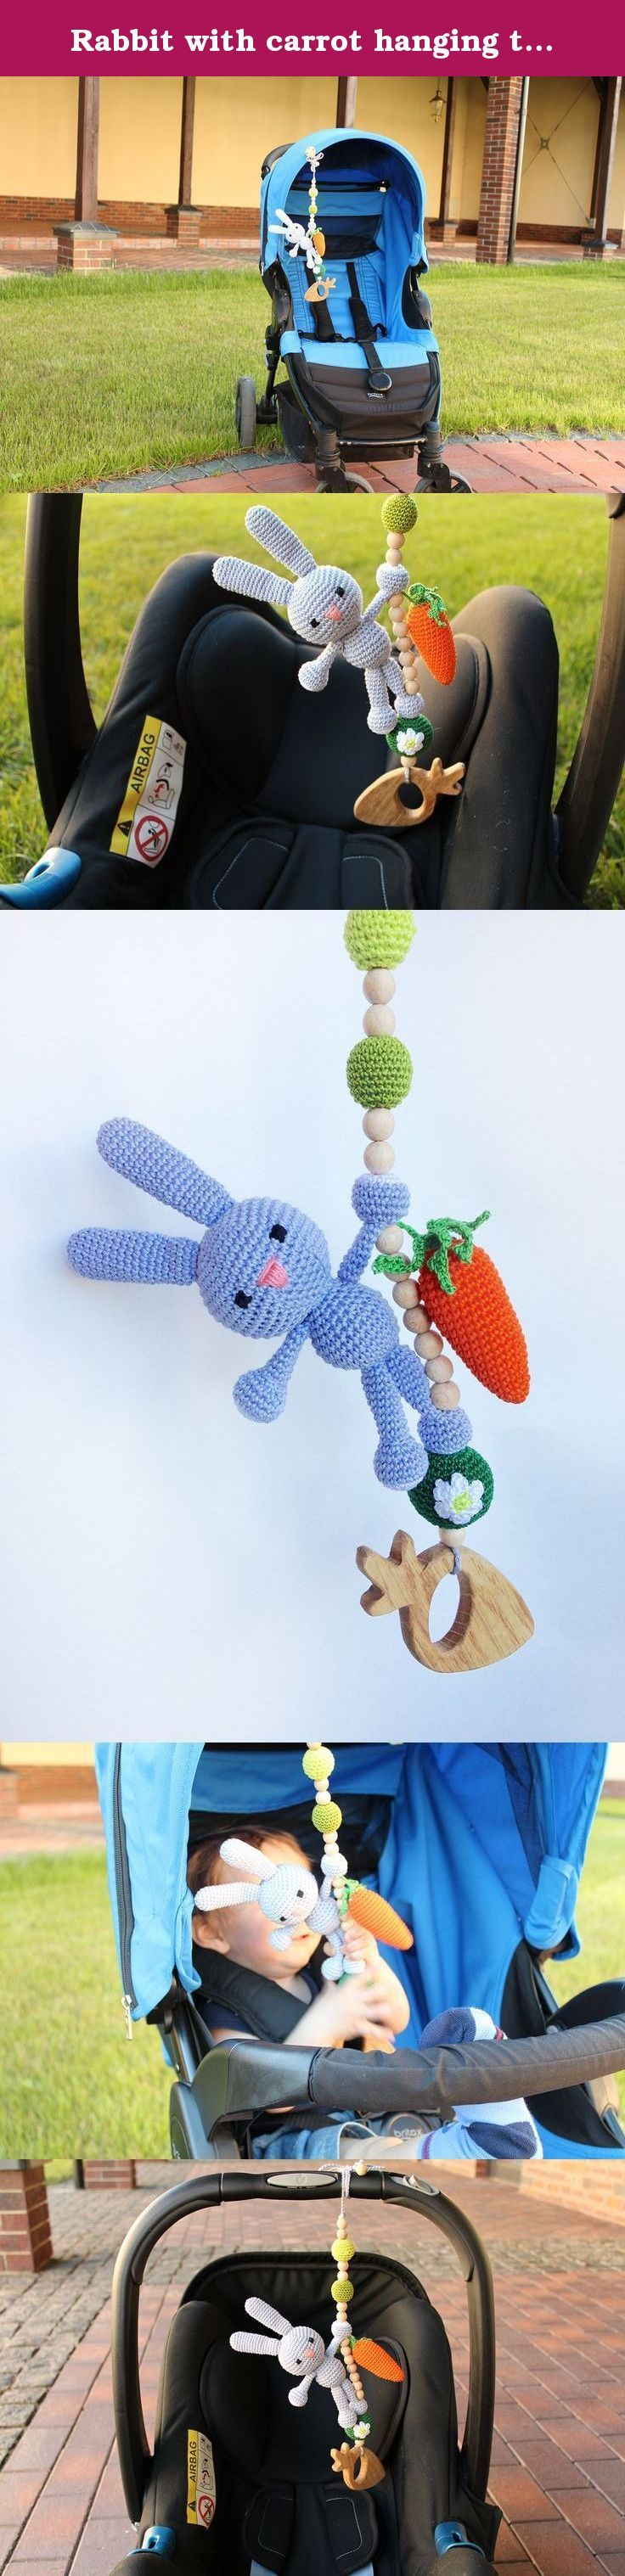 Rabbit with carrot hanging toy, Car seat toy, Pram toy